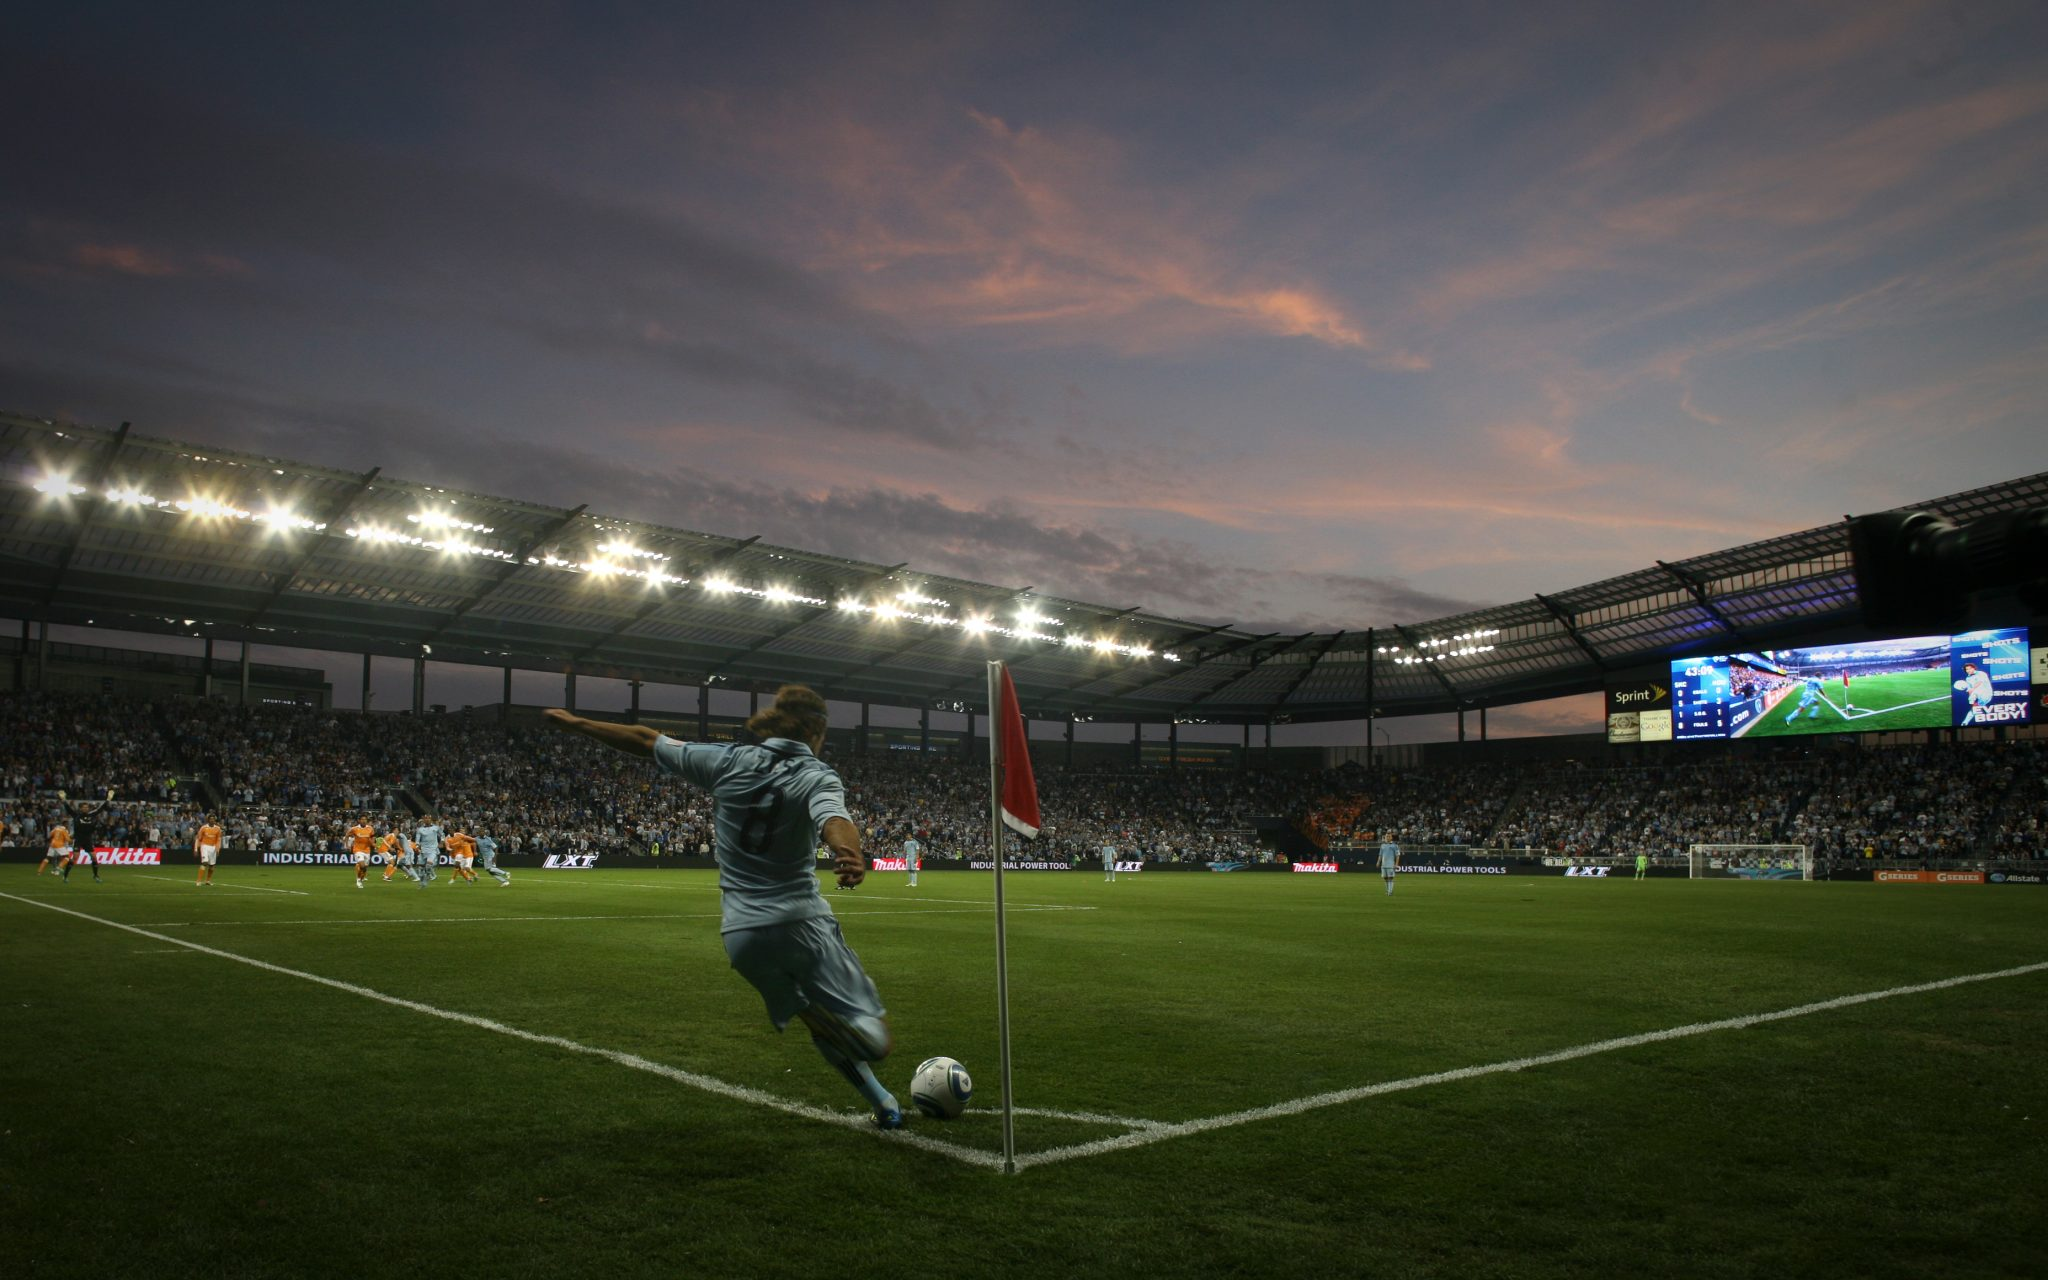 Sporting Park Selected as Venue of the Year